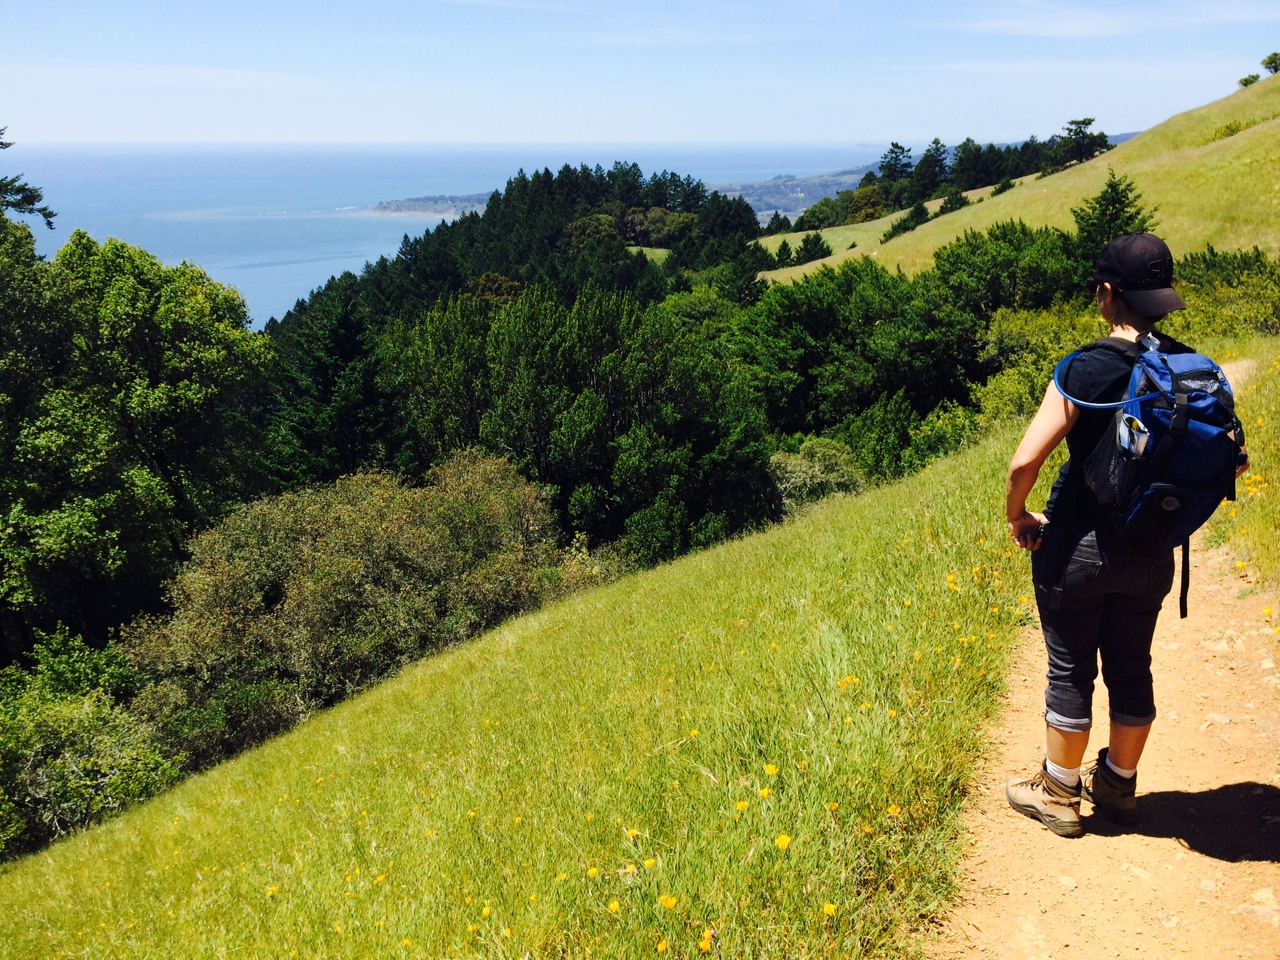 Rel on the Dipsea Trail in Marin.